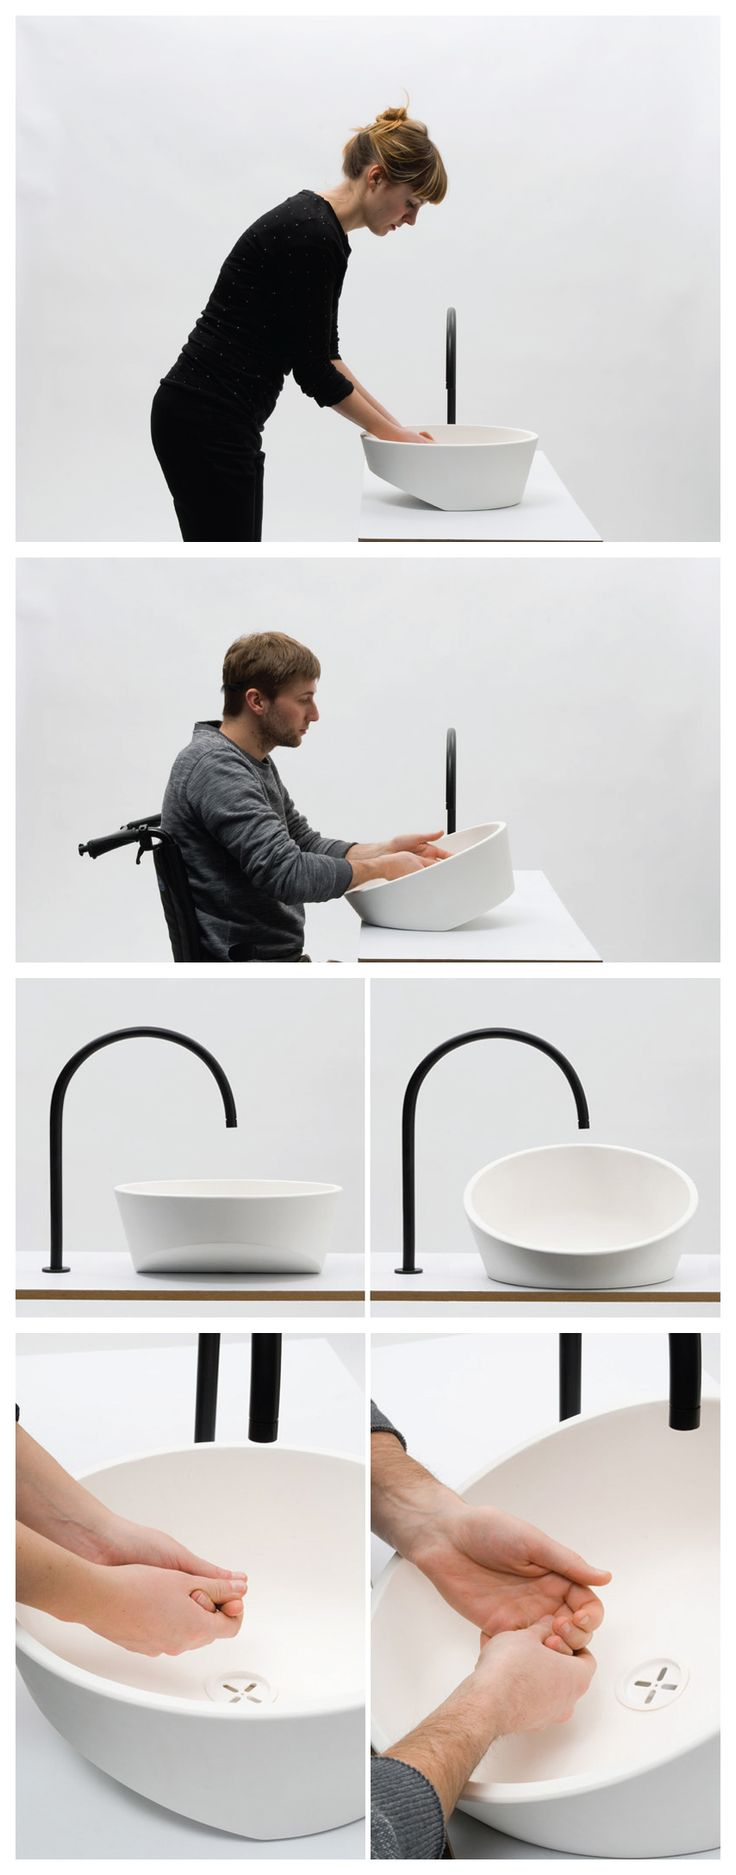 tilting sink by gwenolé gasnier                                                                                                                                                                                 More